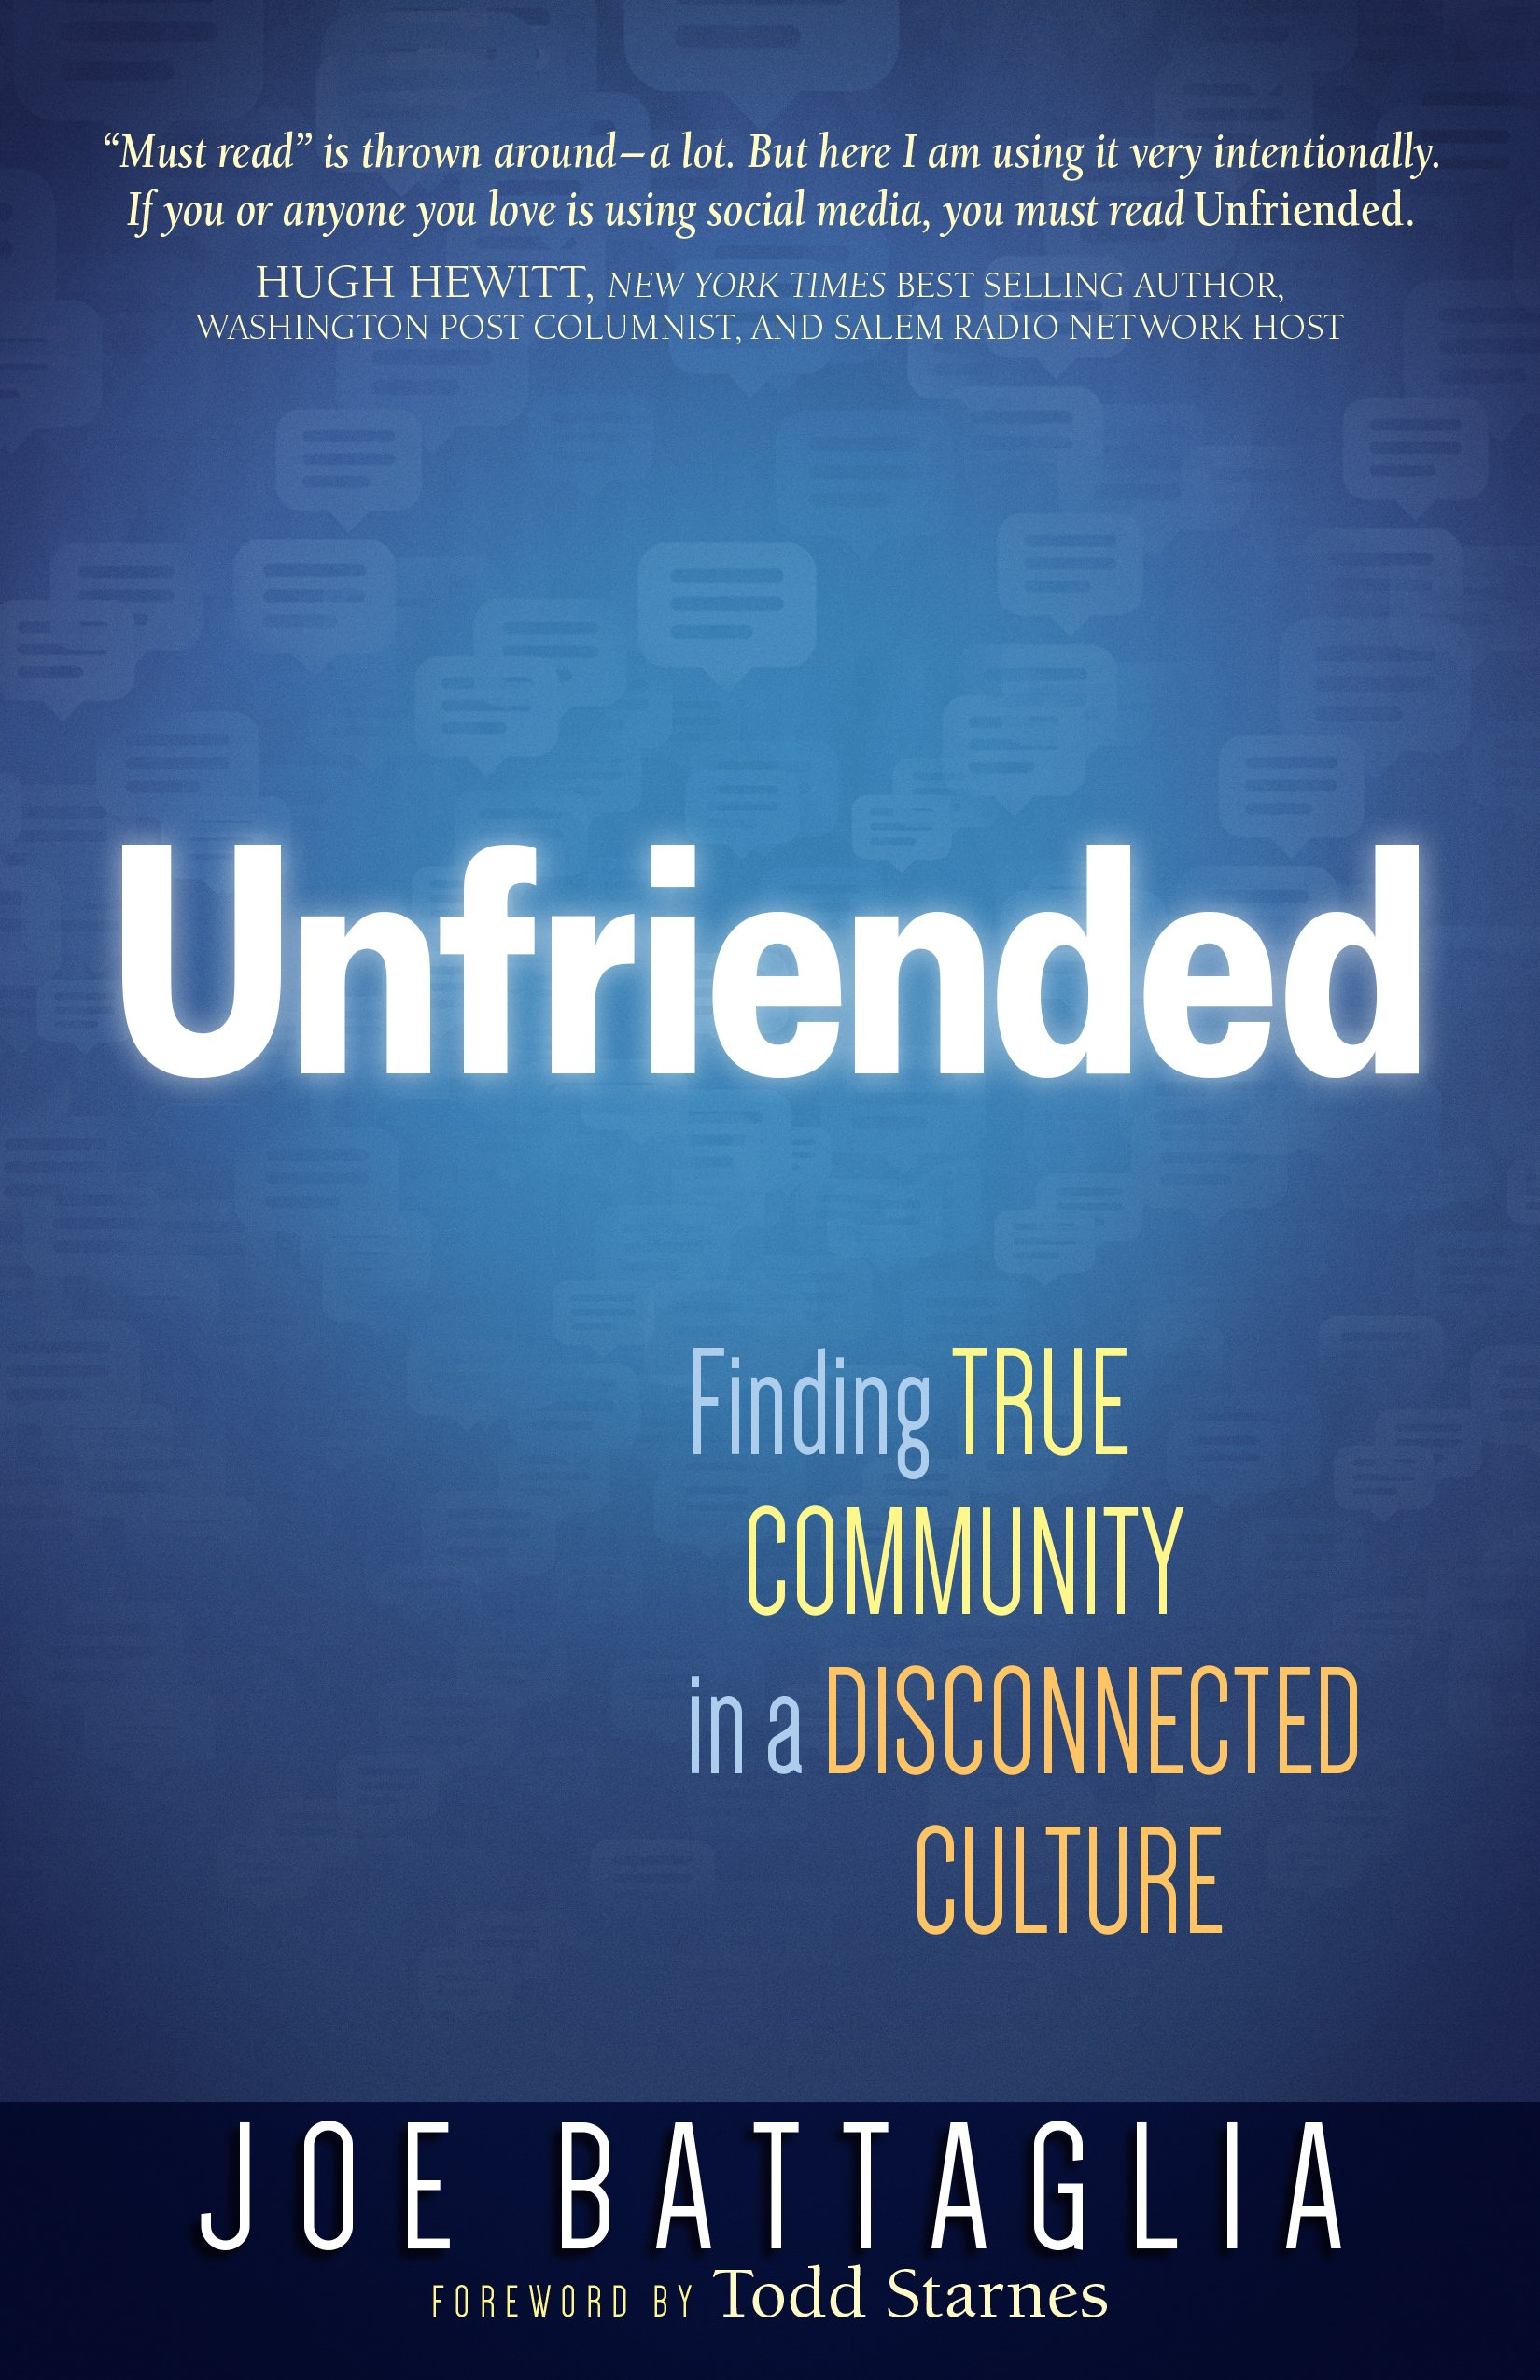 unfriended full movie download eng sub